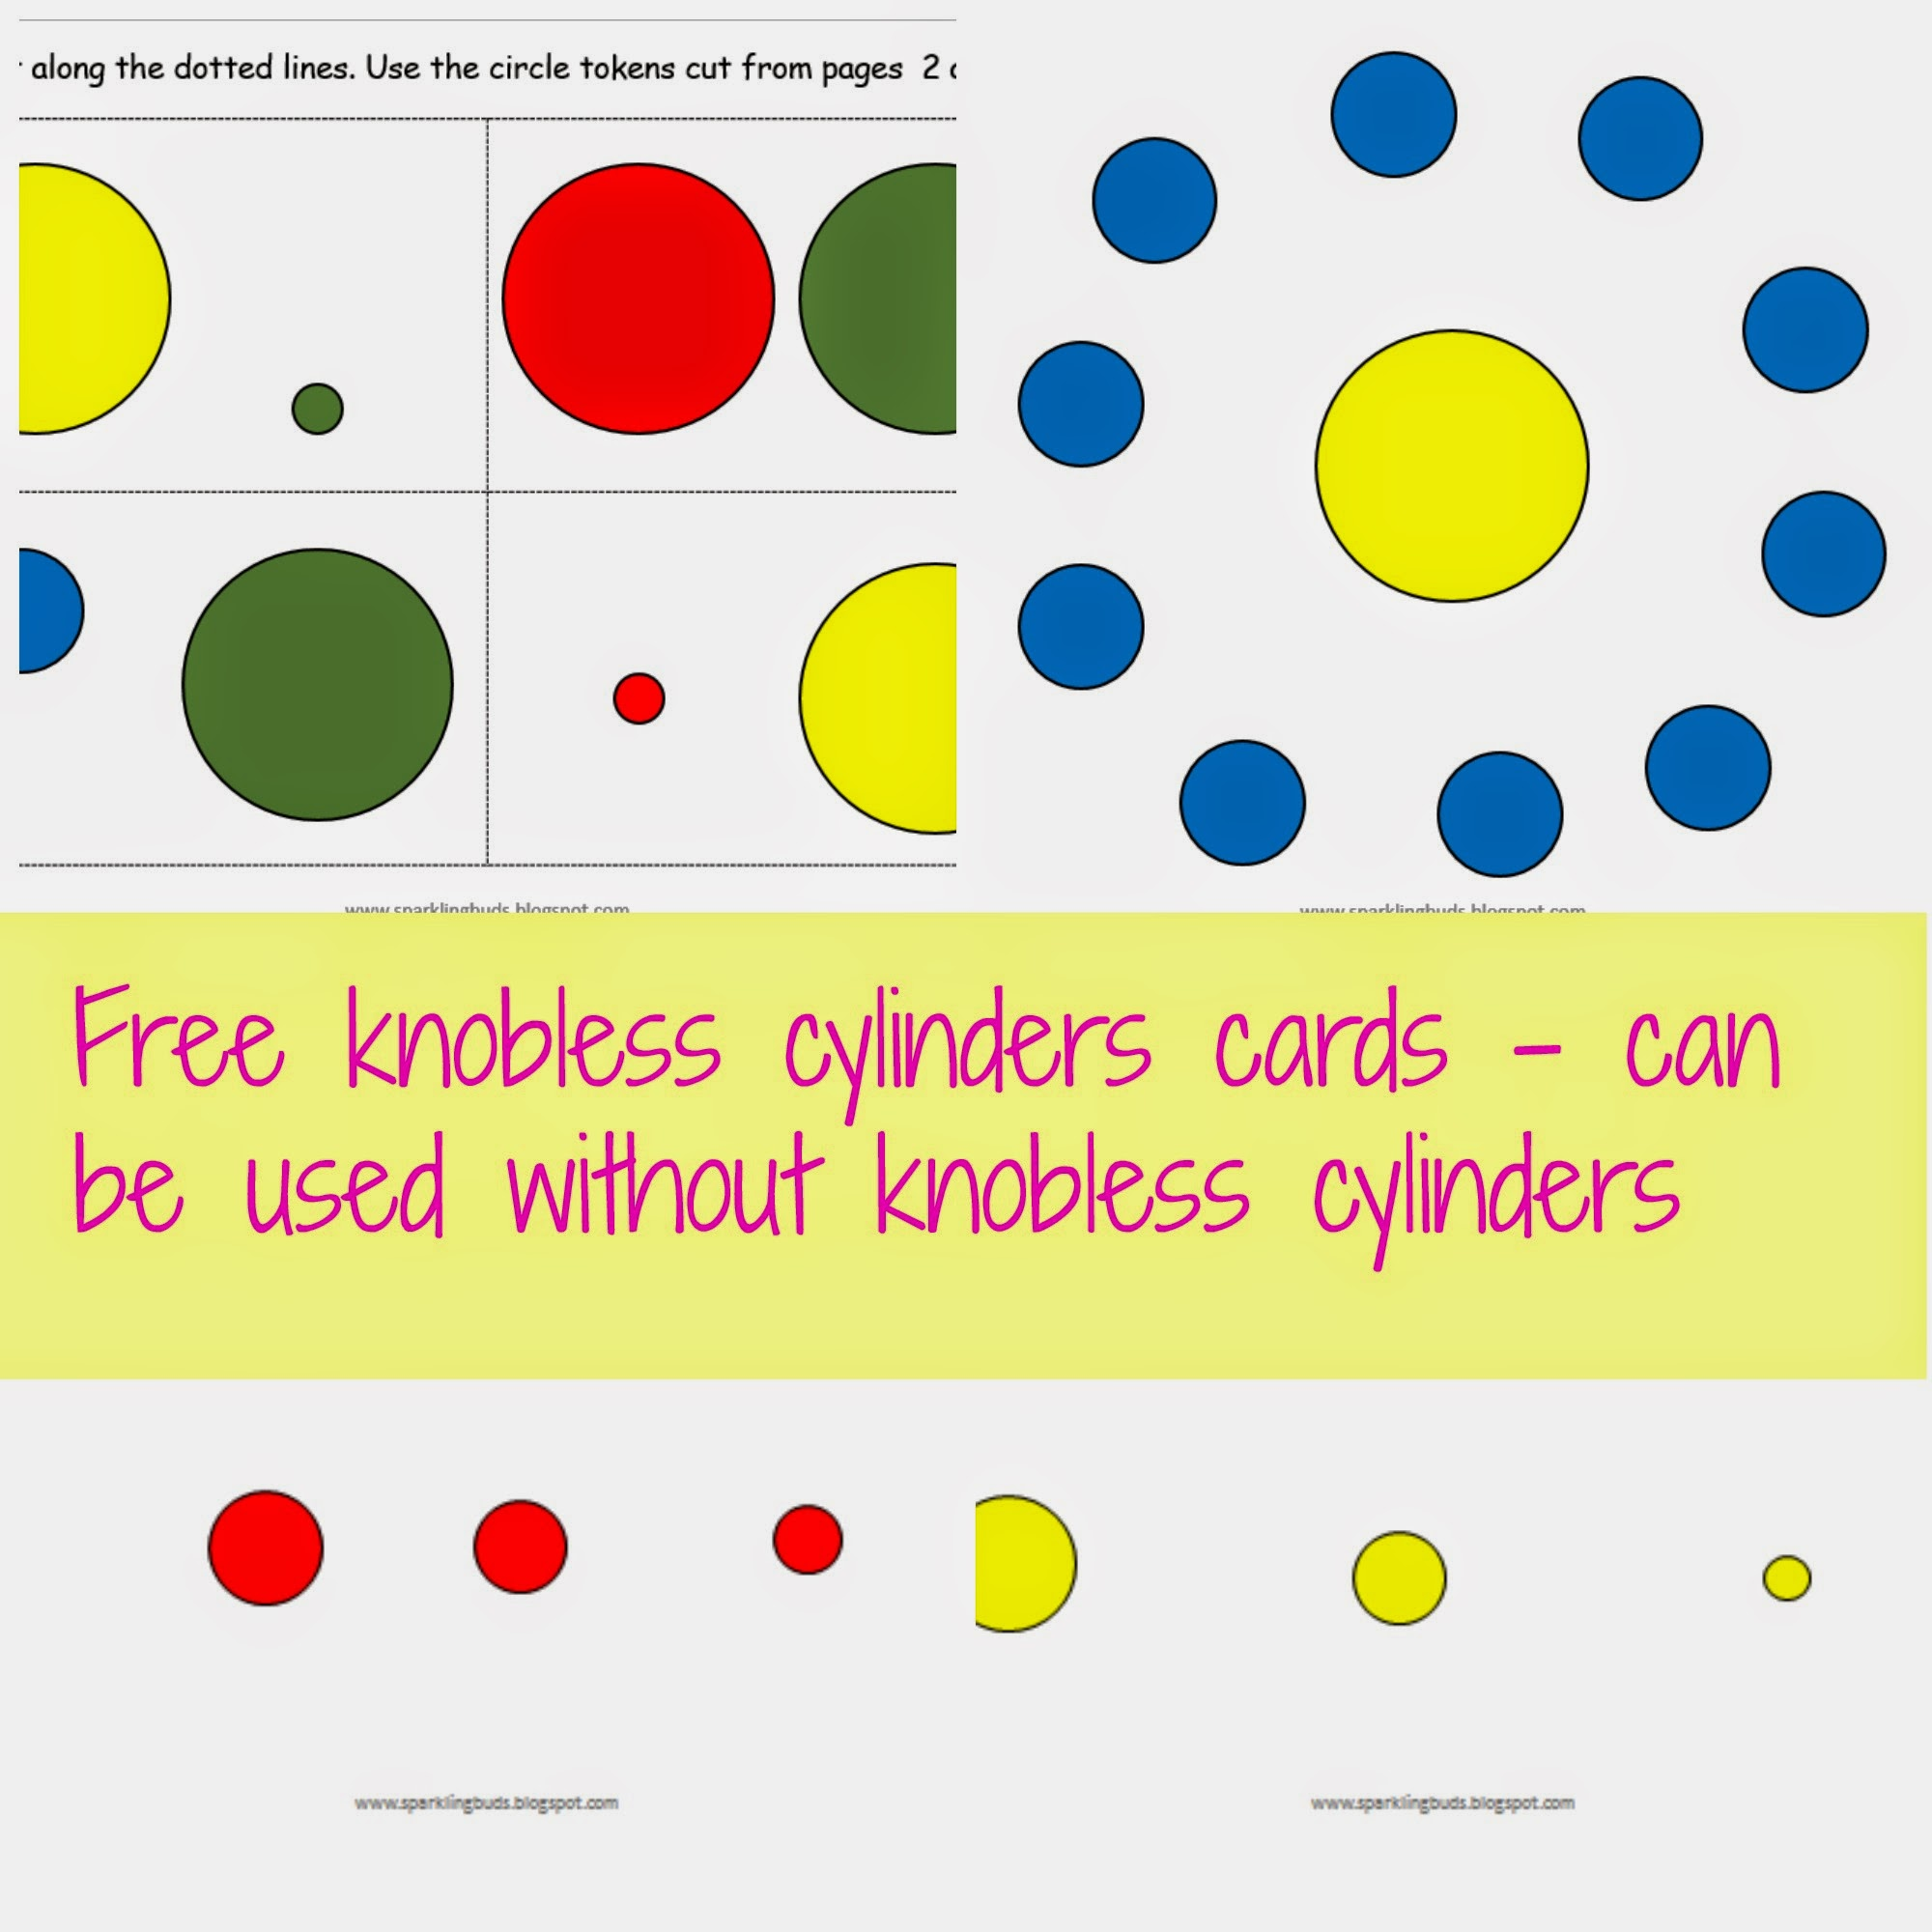 Free Knobless Cylinders Cards For Toddlers